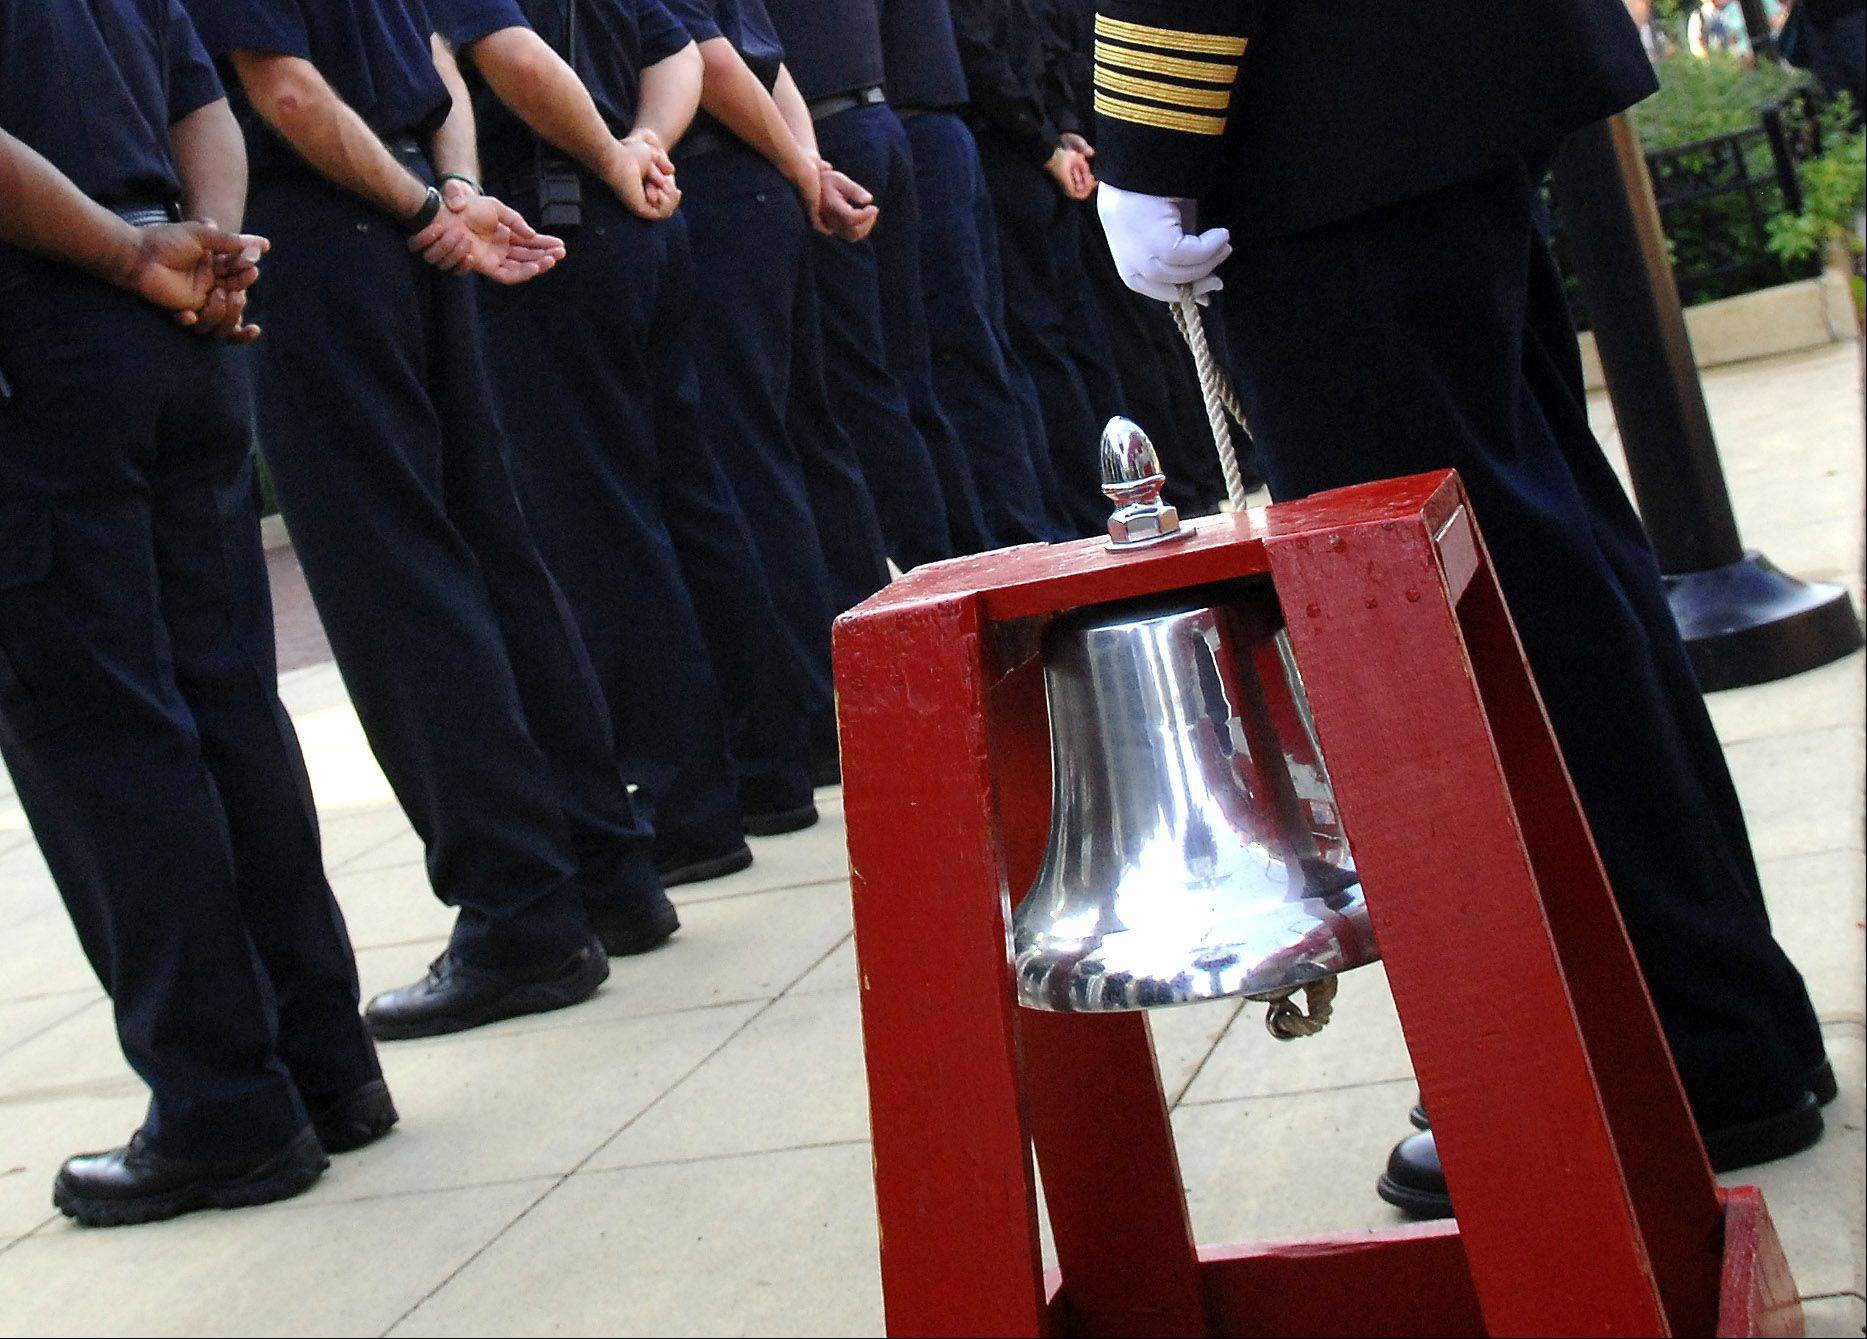 A fire house bell is rung in honor of the firefighters who lost their lives in the aftermath of the terrorist attacks of 2001 during the city of Elgin's Sept. 11th ceremony in front of the police department building Wednesday.